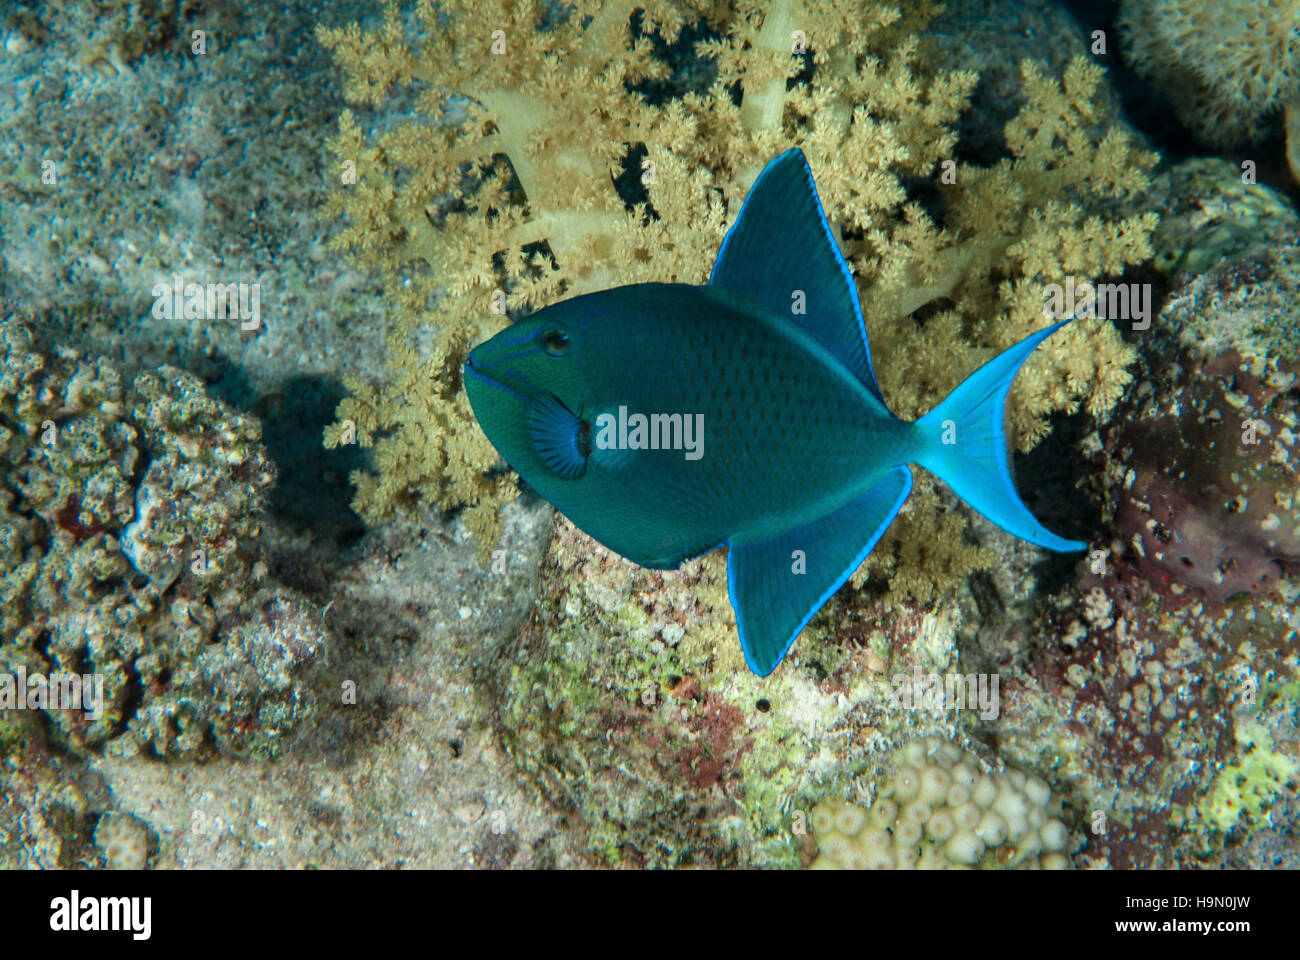 Redtooth Triggerfish, Odonus niger, Balestidae, Red Sea, Sharm el-Sheikh, Egypt Stock Photo